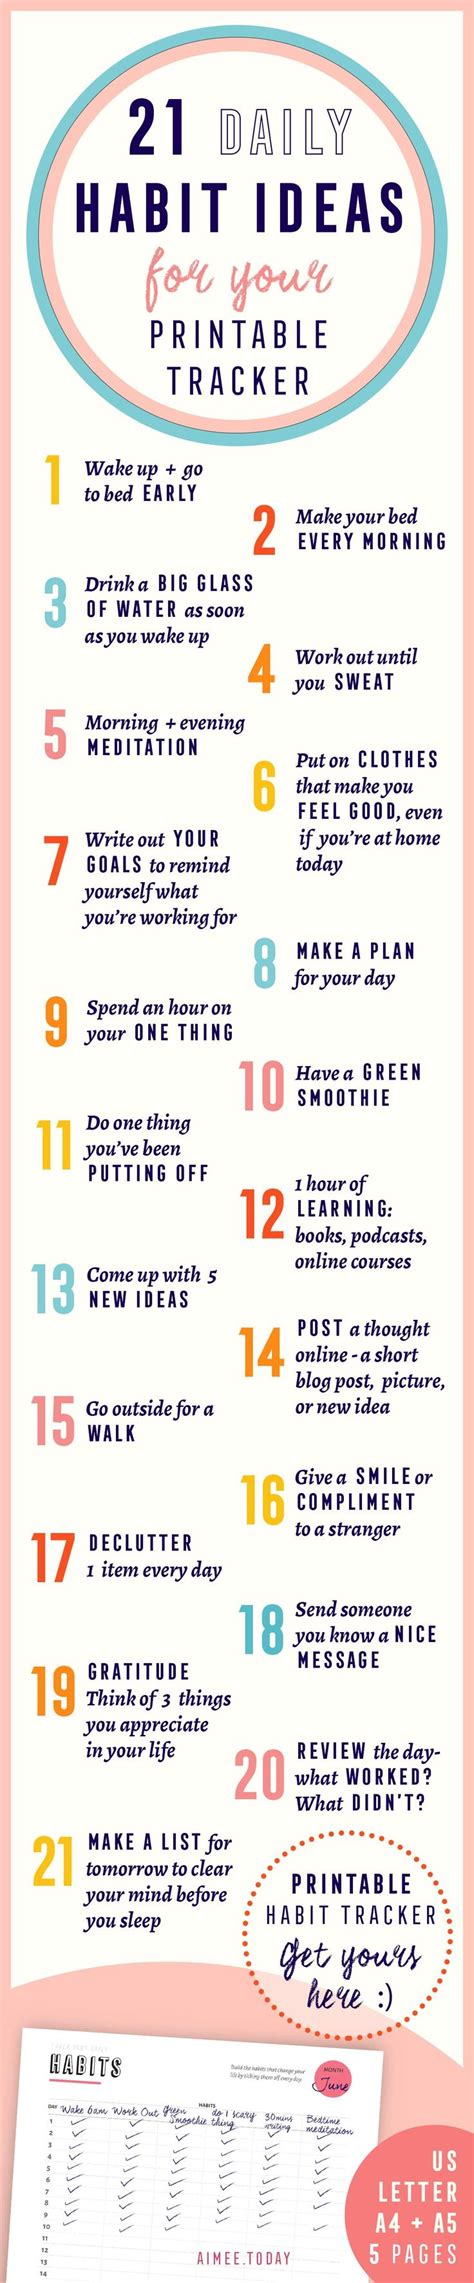 Best 25 Healthy Habits Ideas Best 25 Goals Ideas On Goals List Coaching Tools And Healthy Habits